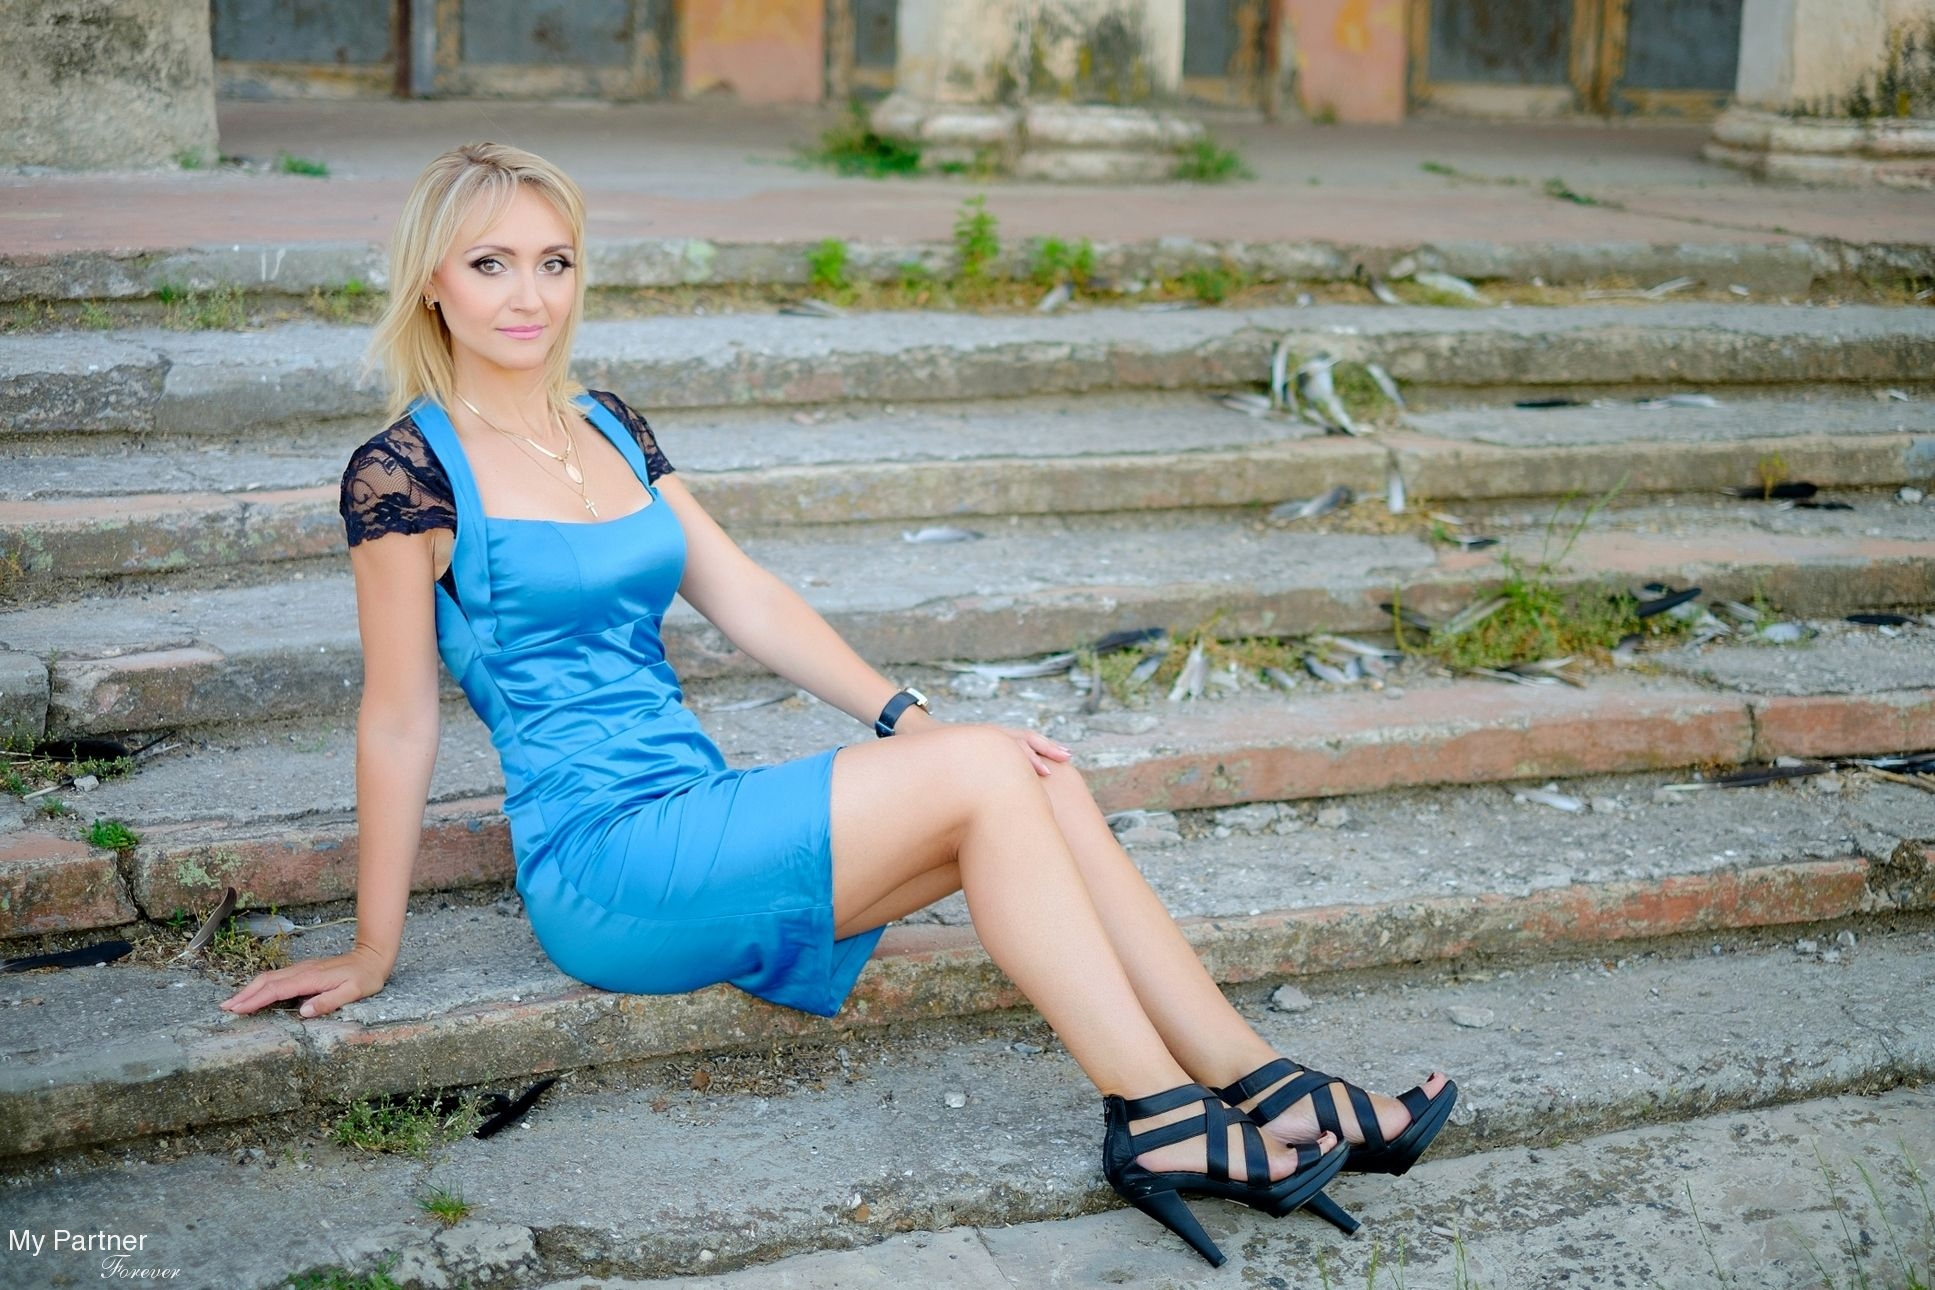 odessa dating agency Highly reputable and professional kiev dating and marriage agency our lovely ukrainian ladies are genuinely looking for love.